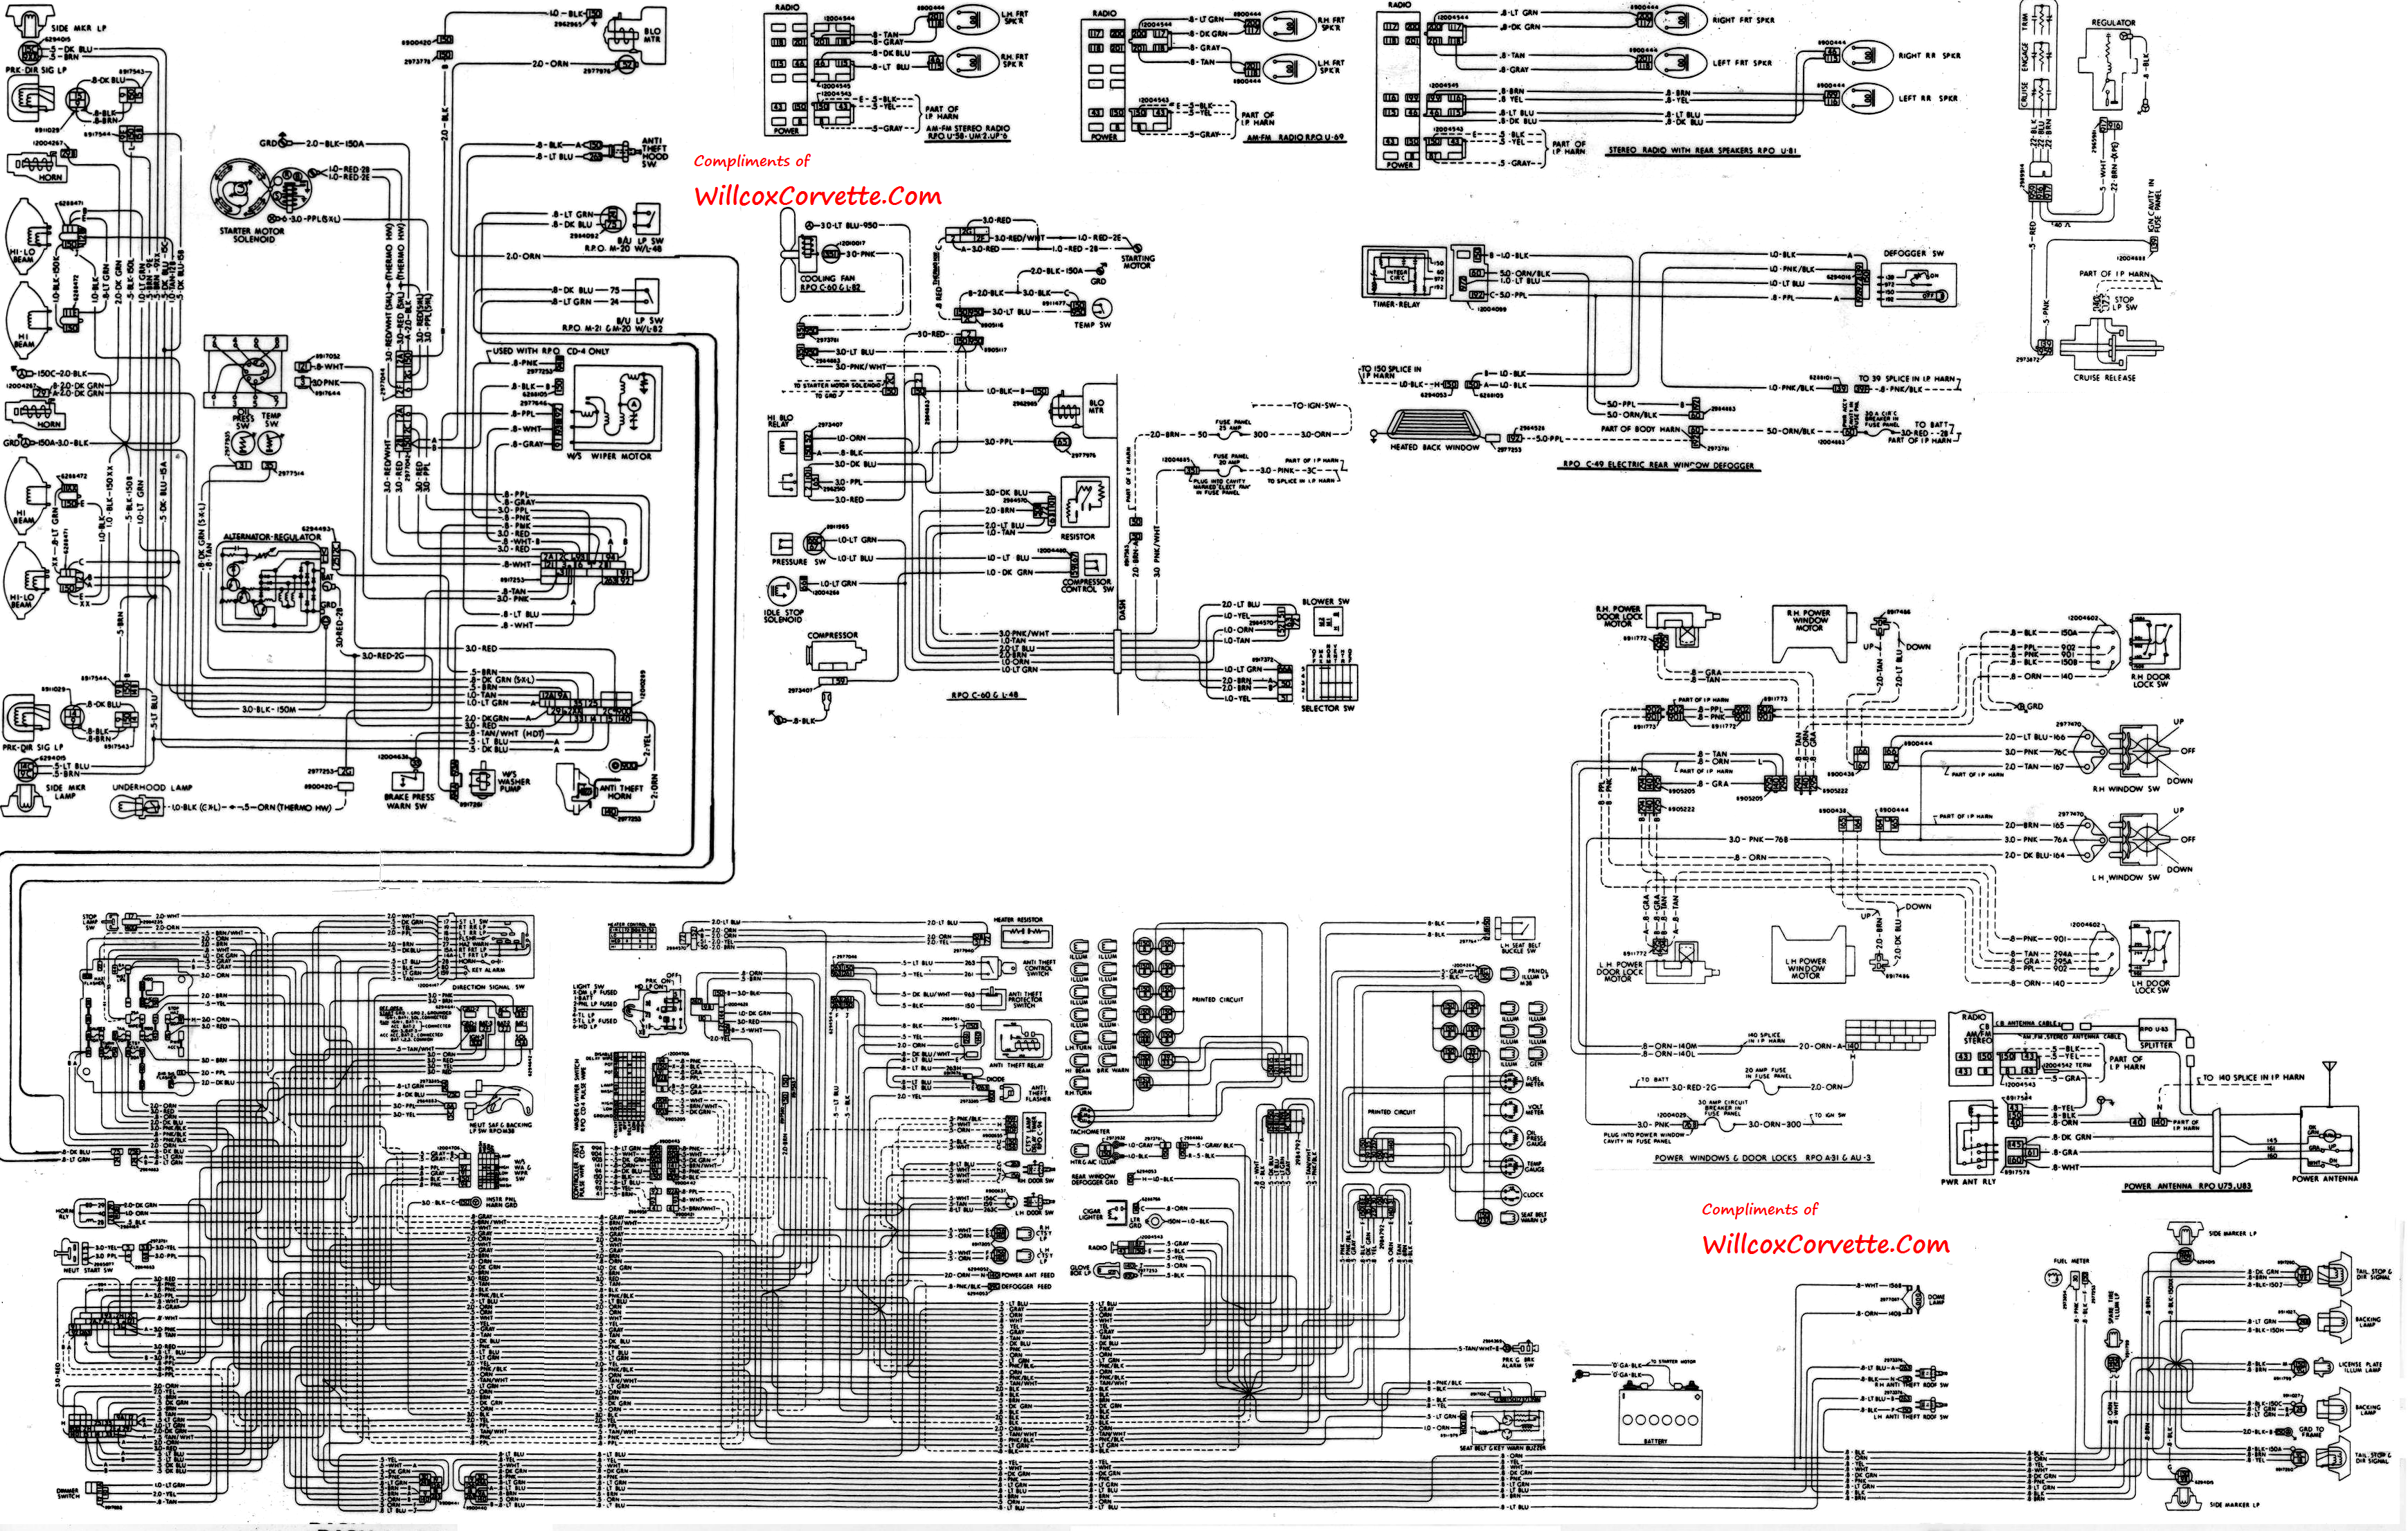 1979 wire diagram 1979 corvette tracer wiring diagram tracer schematic willcox 1980 corvette wiring schematics at panicattacktreatment.co